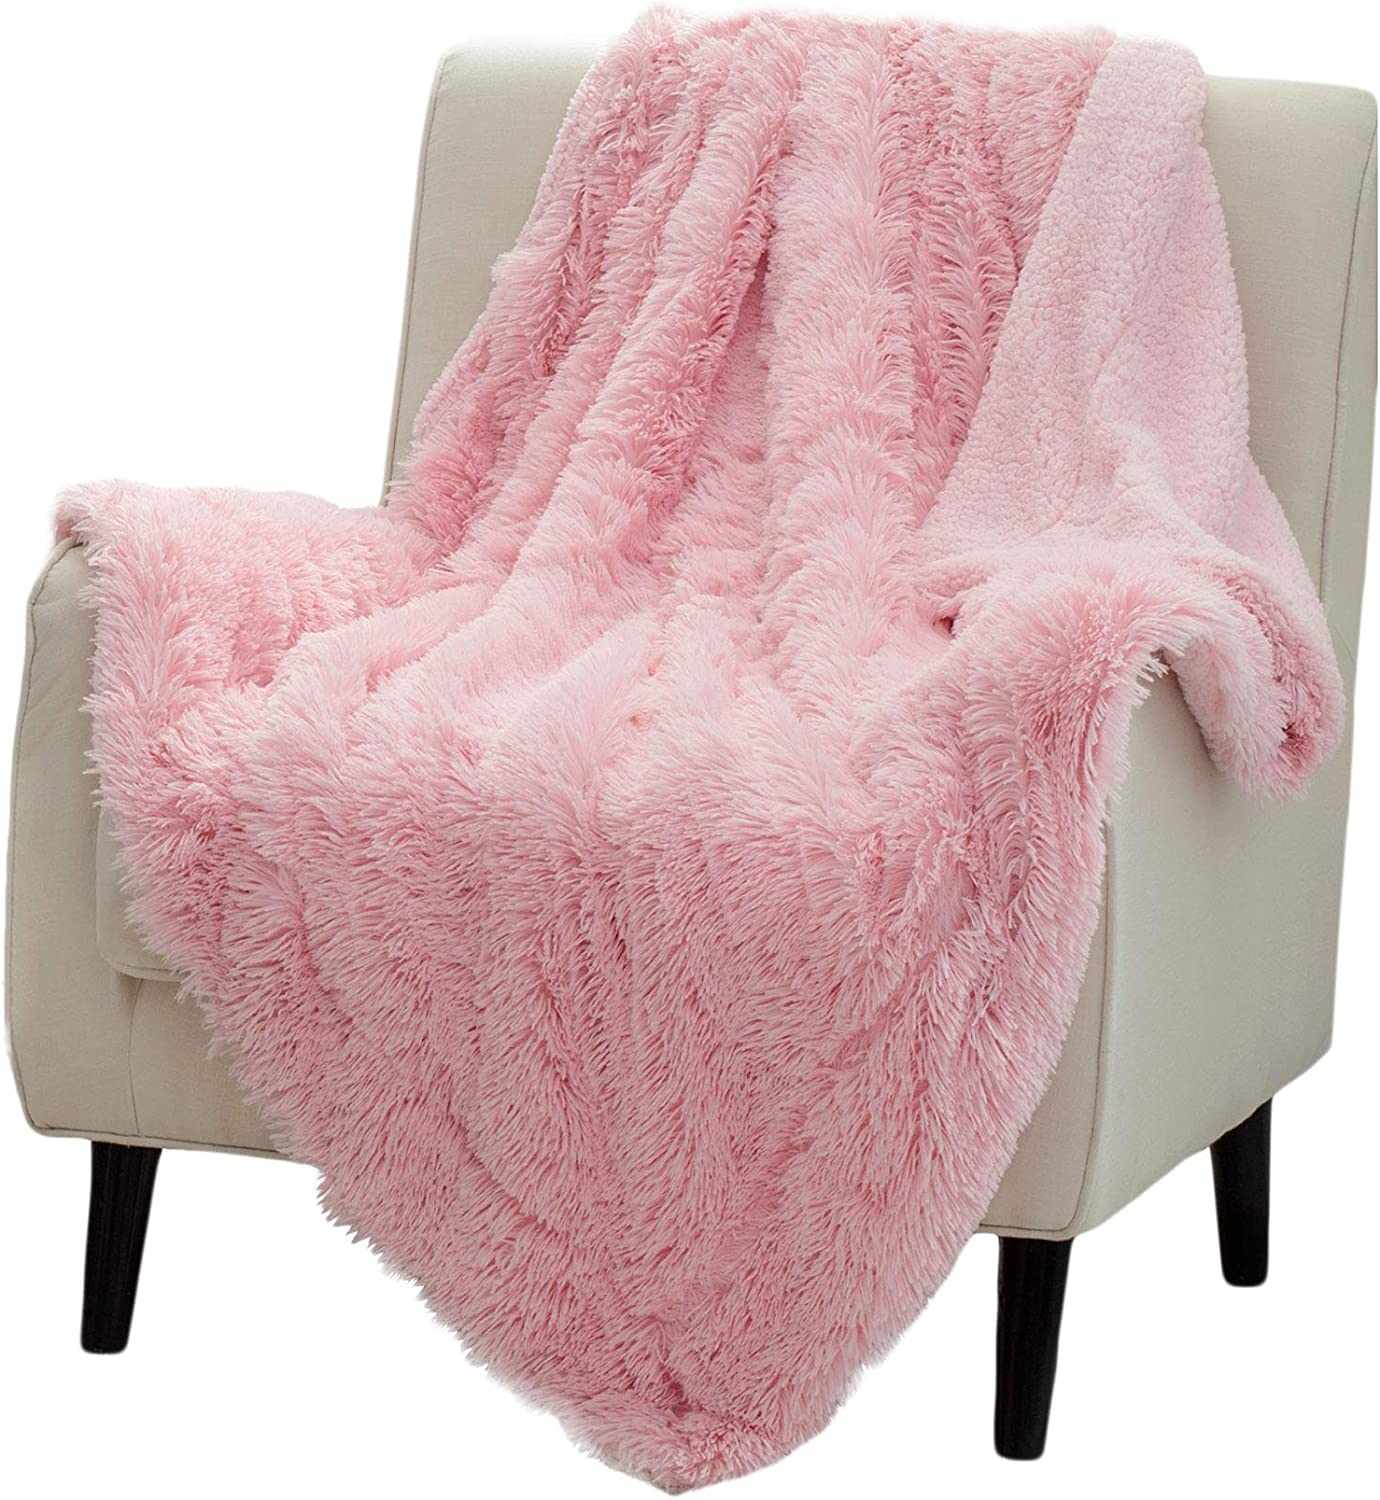 Bedsure Soft Fuzzy Faux Fur Sherpa Fleece Throw Blanket Pink- Warm Thick Fluffy Plush Cozy Reversible Shaggy Blanket for Sofa and Bed -Comfy Furry Blanket, 60x80 inches